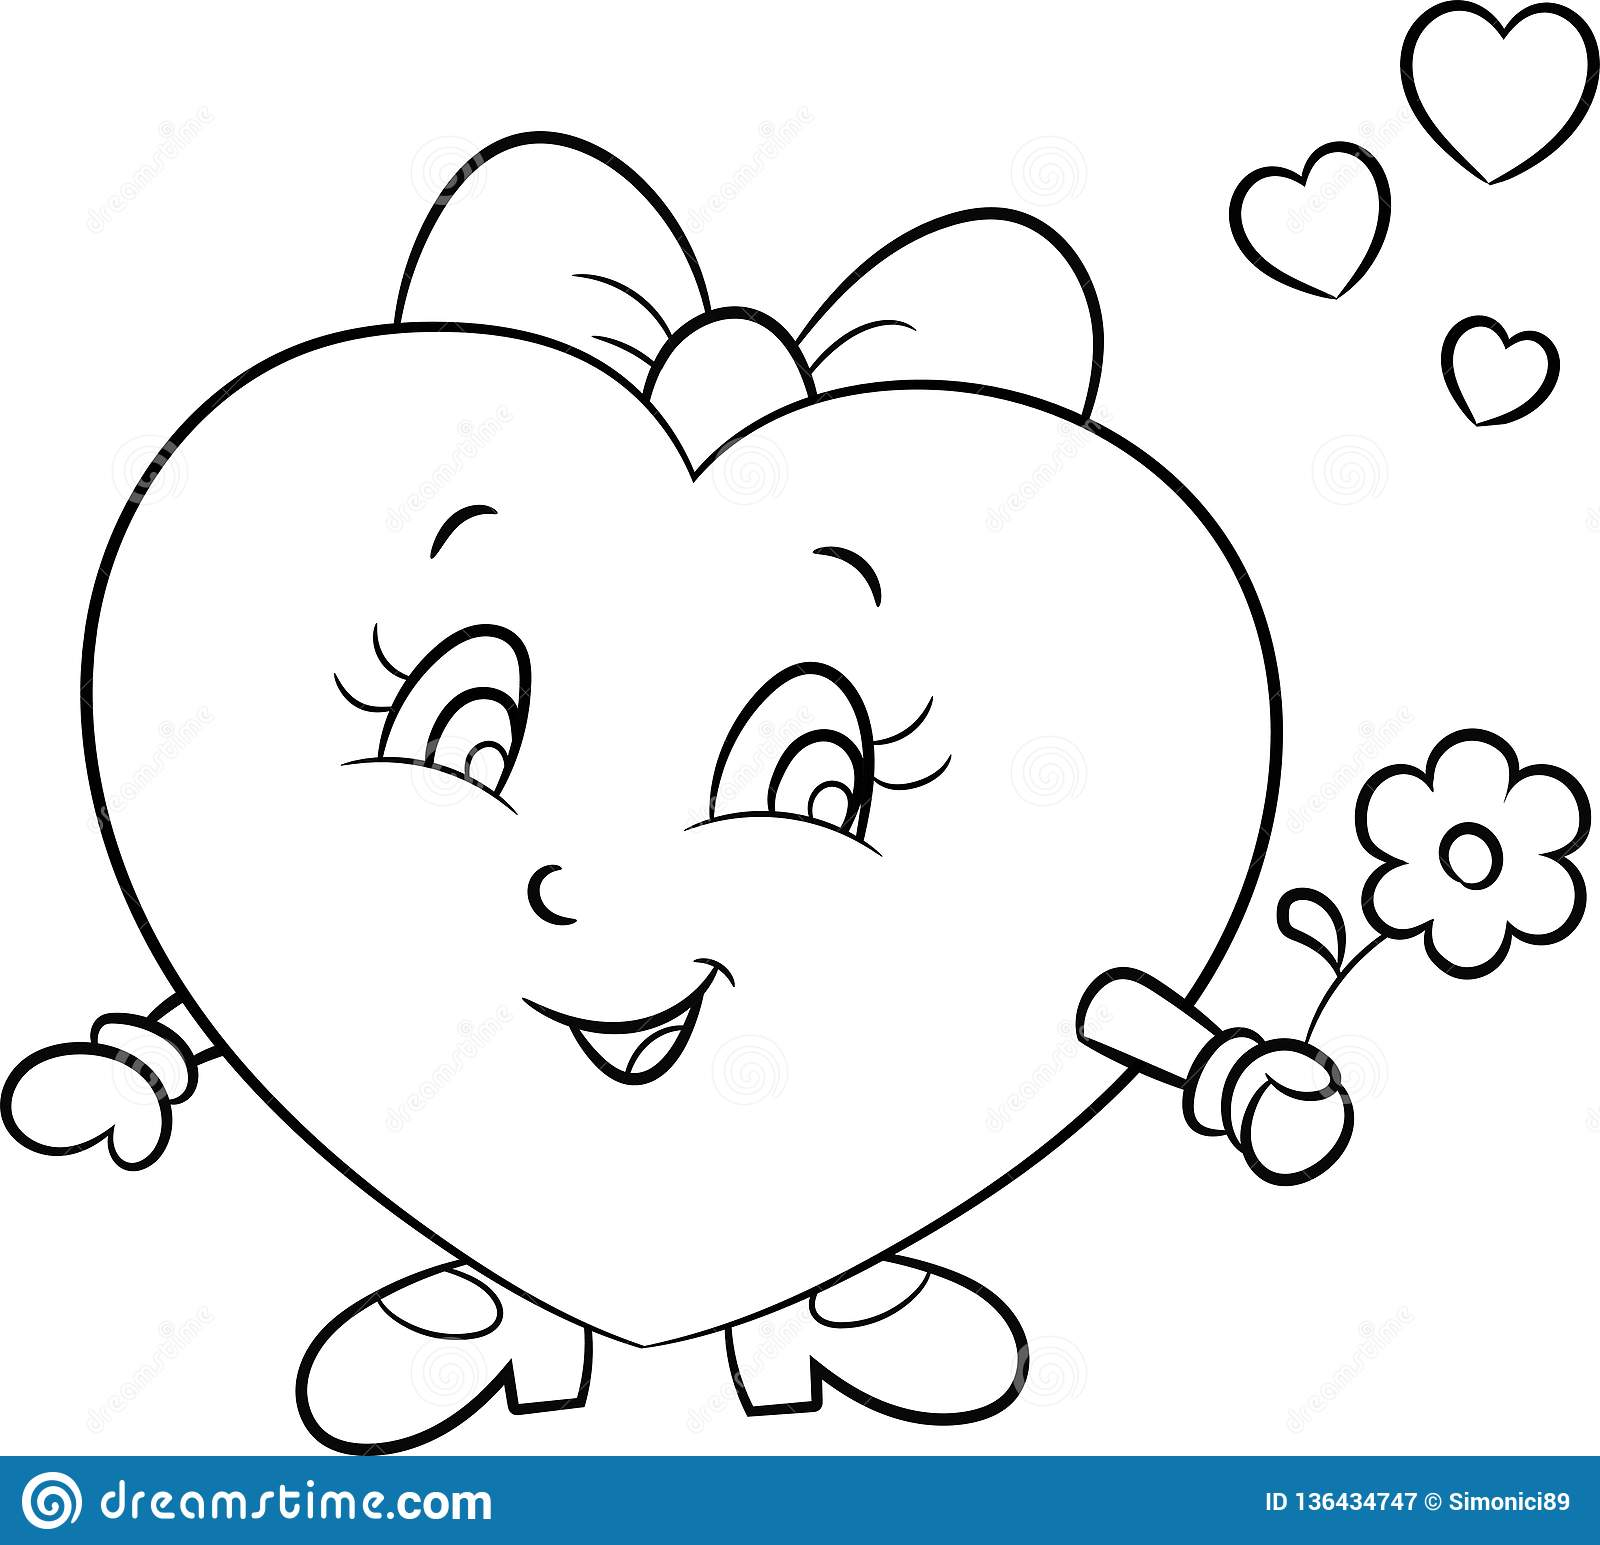 Illustration Of A Cute Little Girl Heart Love Emoji In Black And